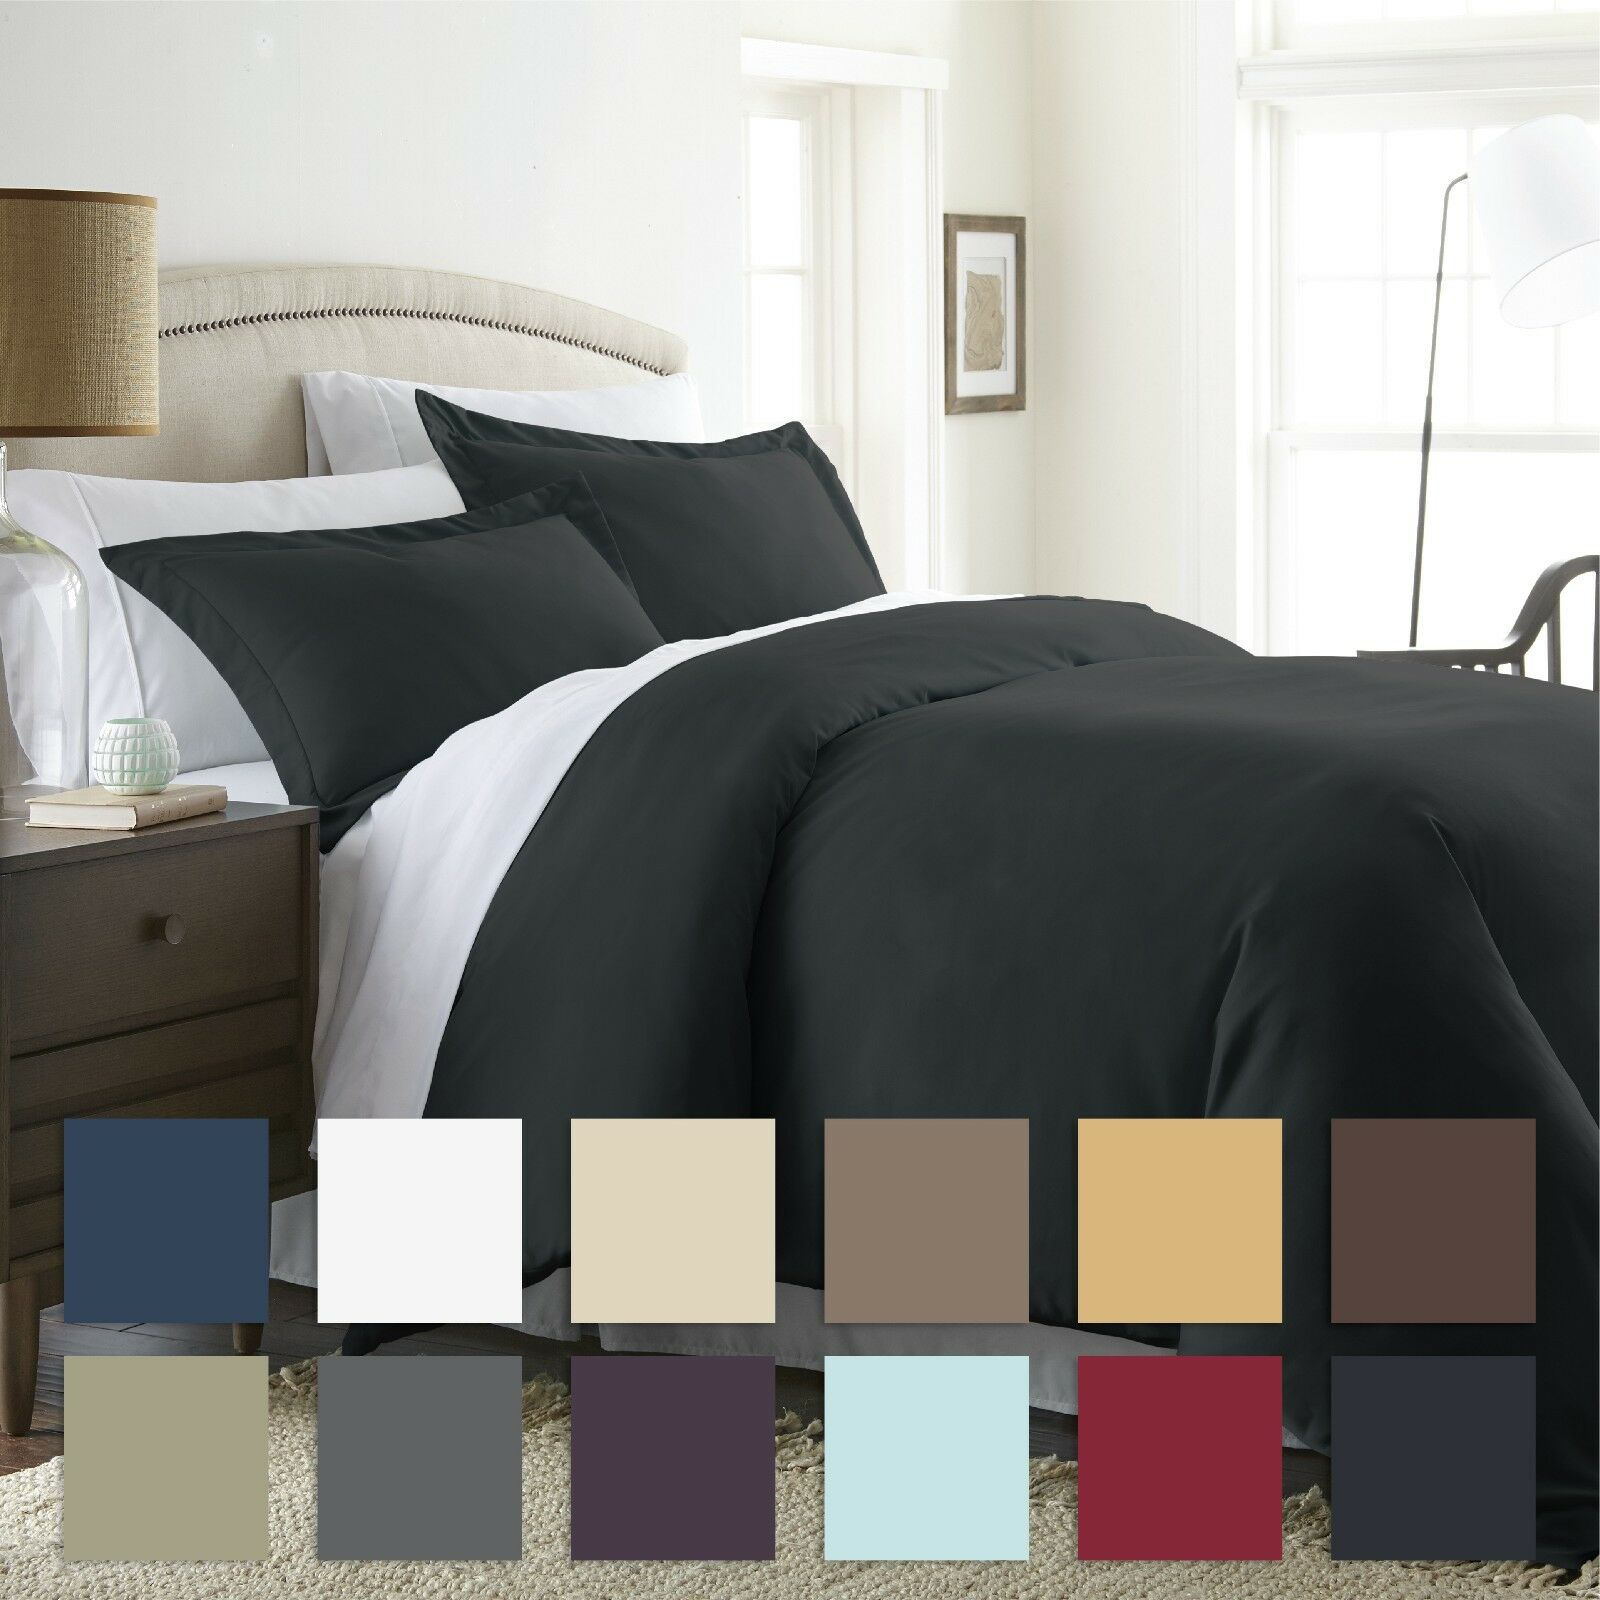 3 Piece Premium Duvet Cover Set Ultra Soft By The Home Collection